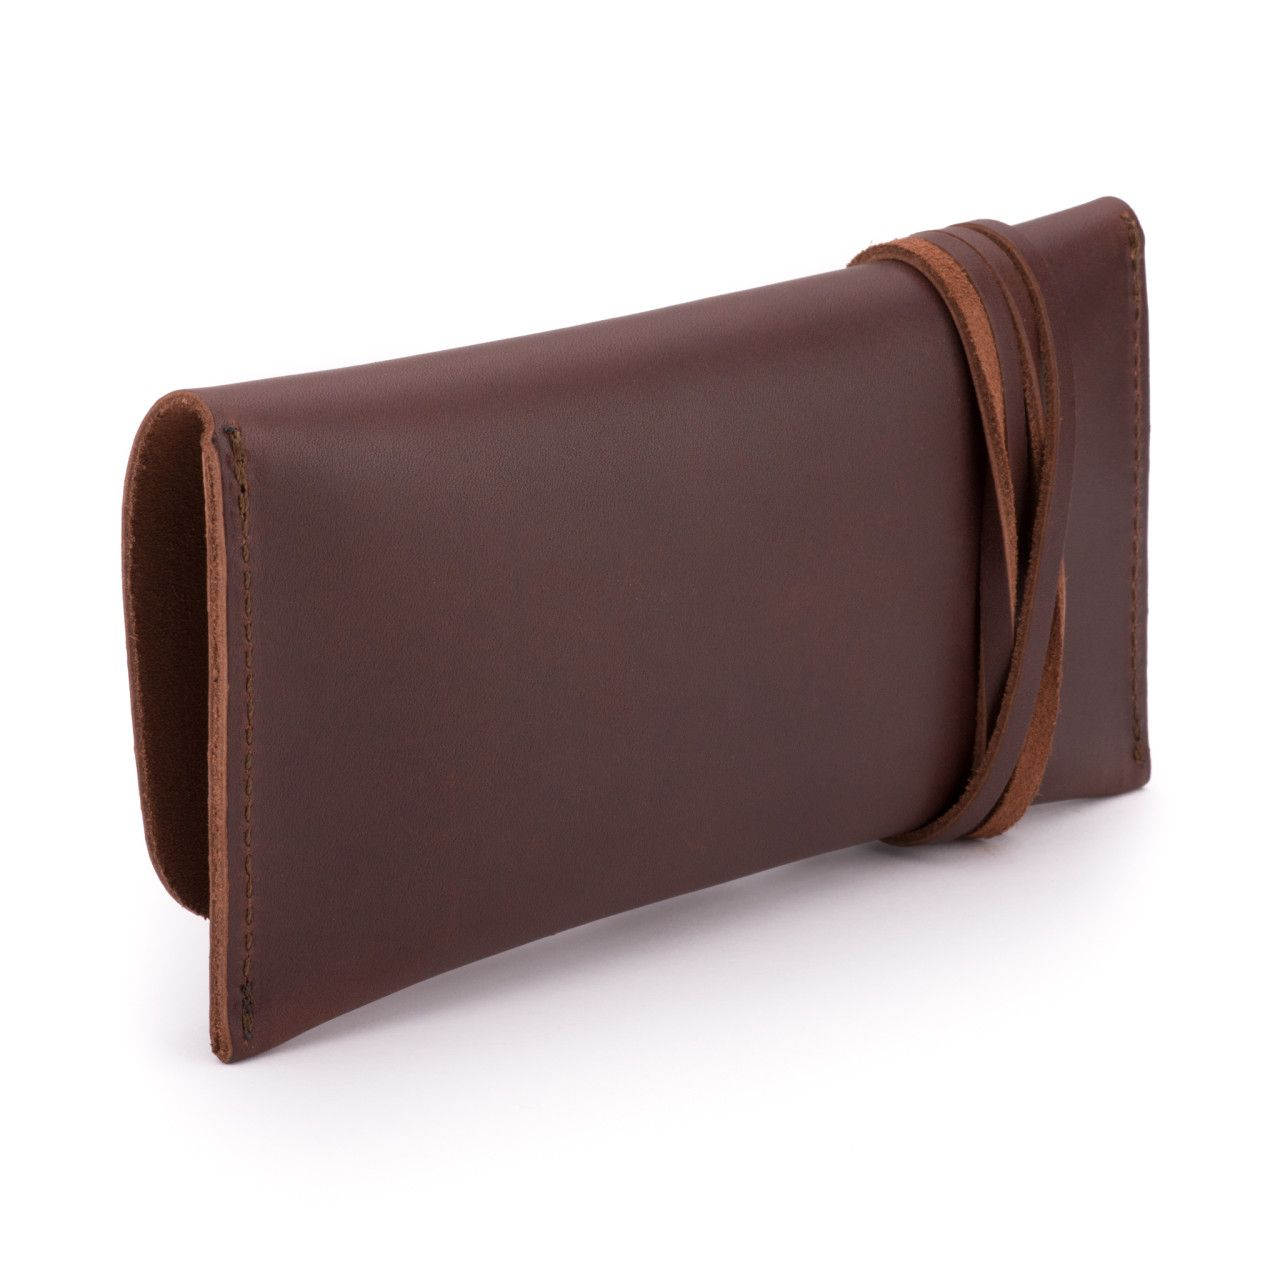 leather sunglass case in chestnut leather